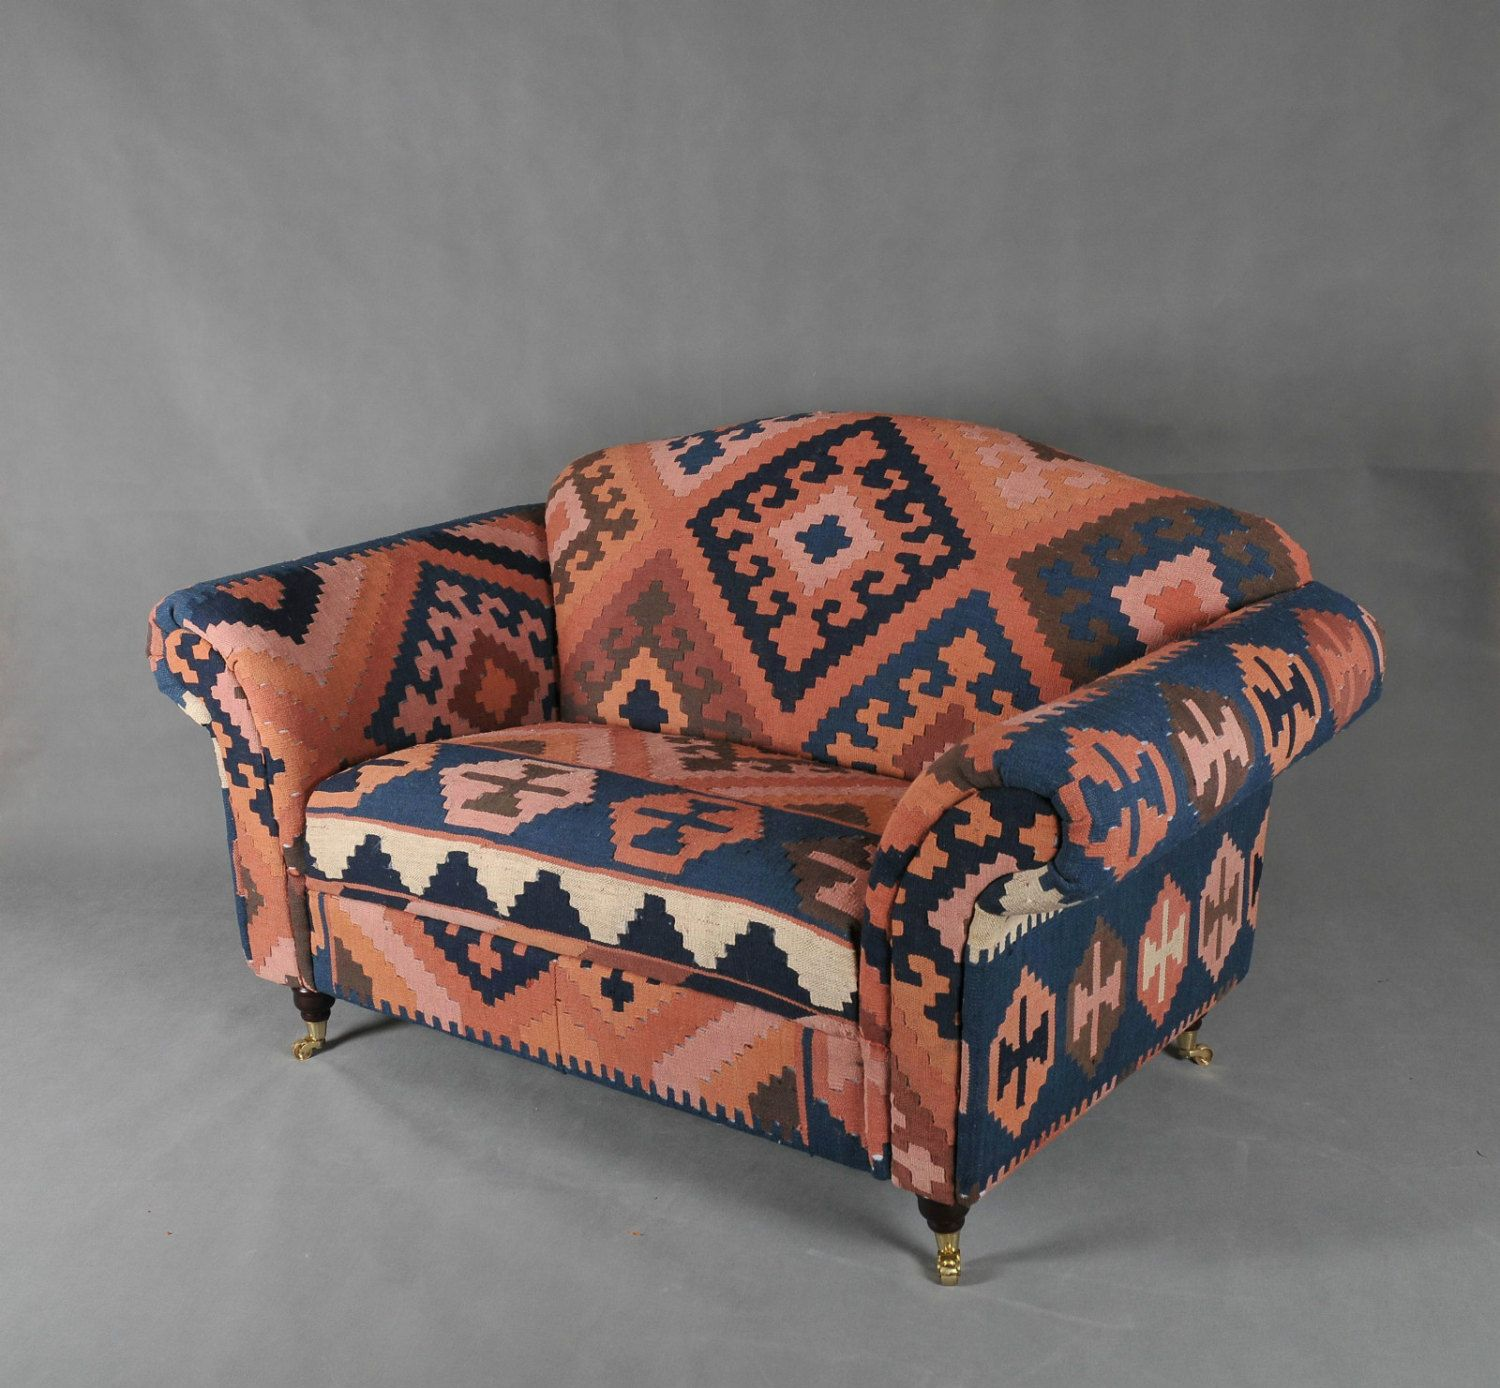 Handwoven Vintage Wool Kilim Sofa armchair chair patchwork